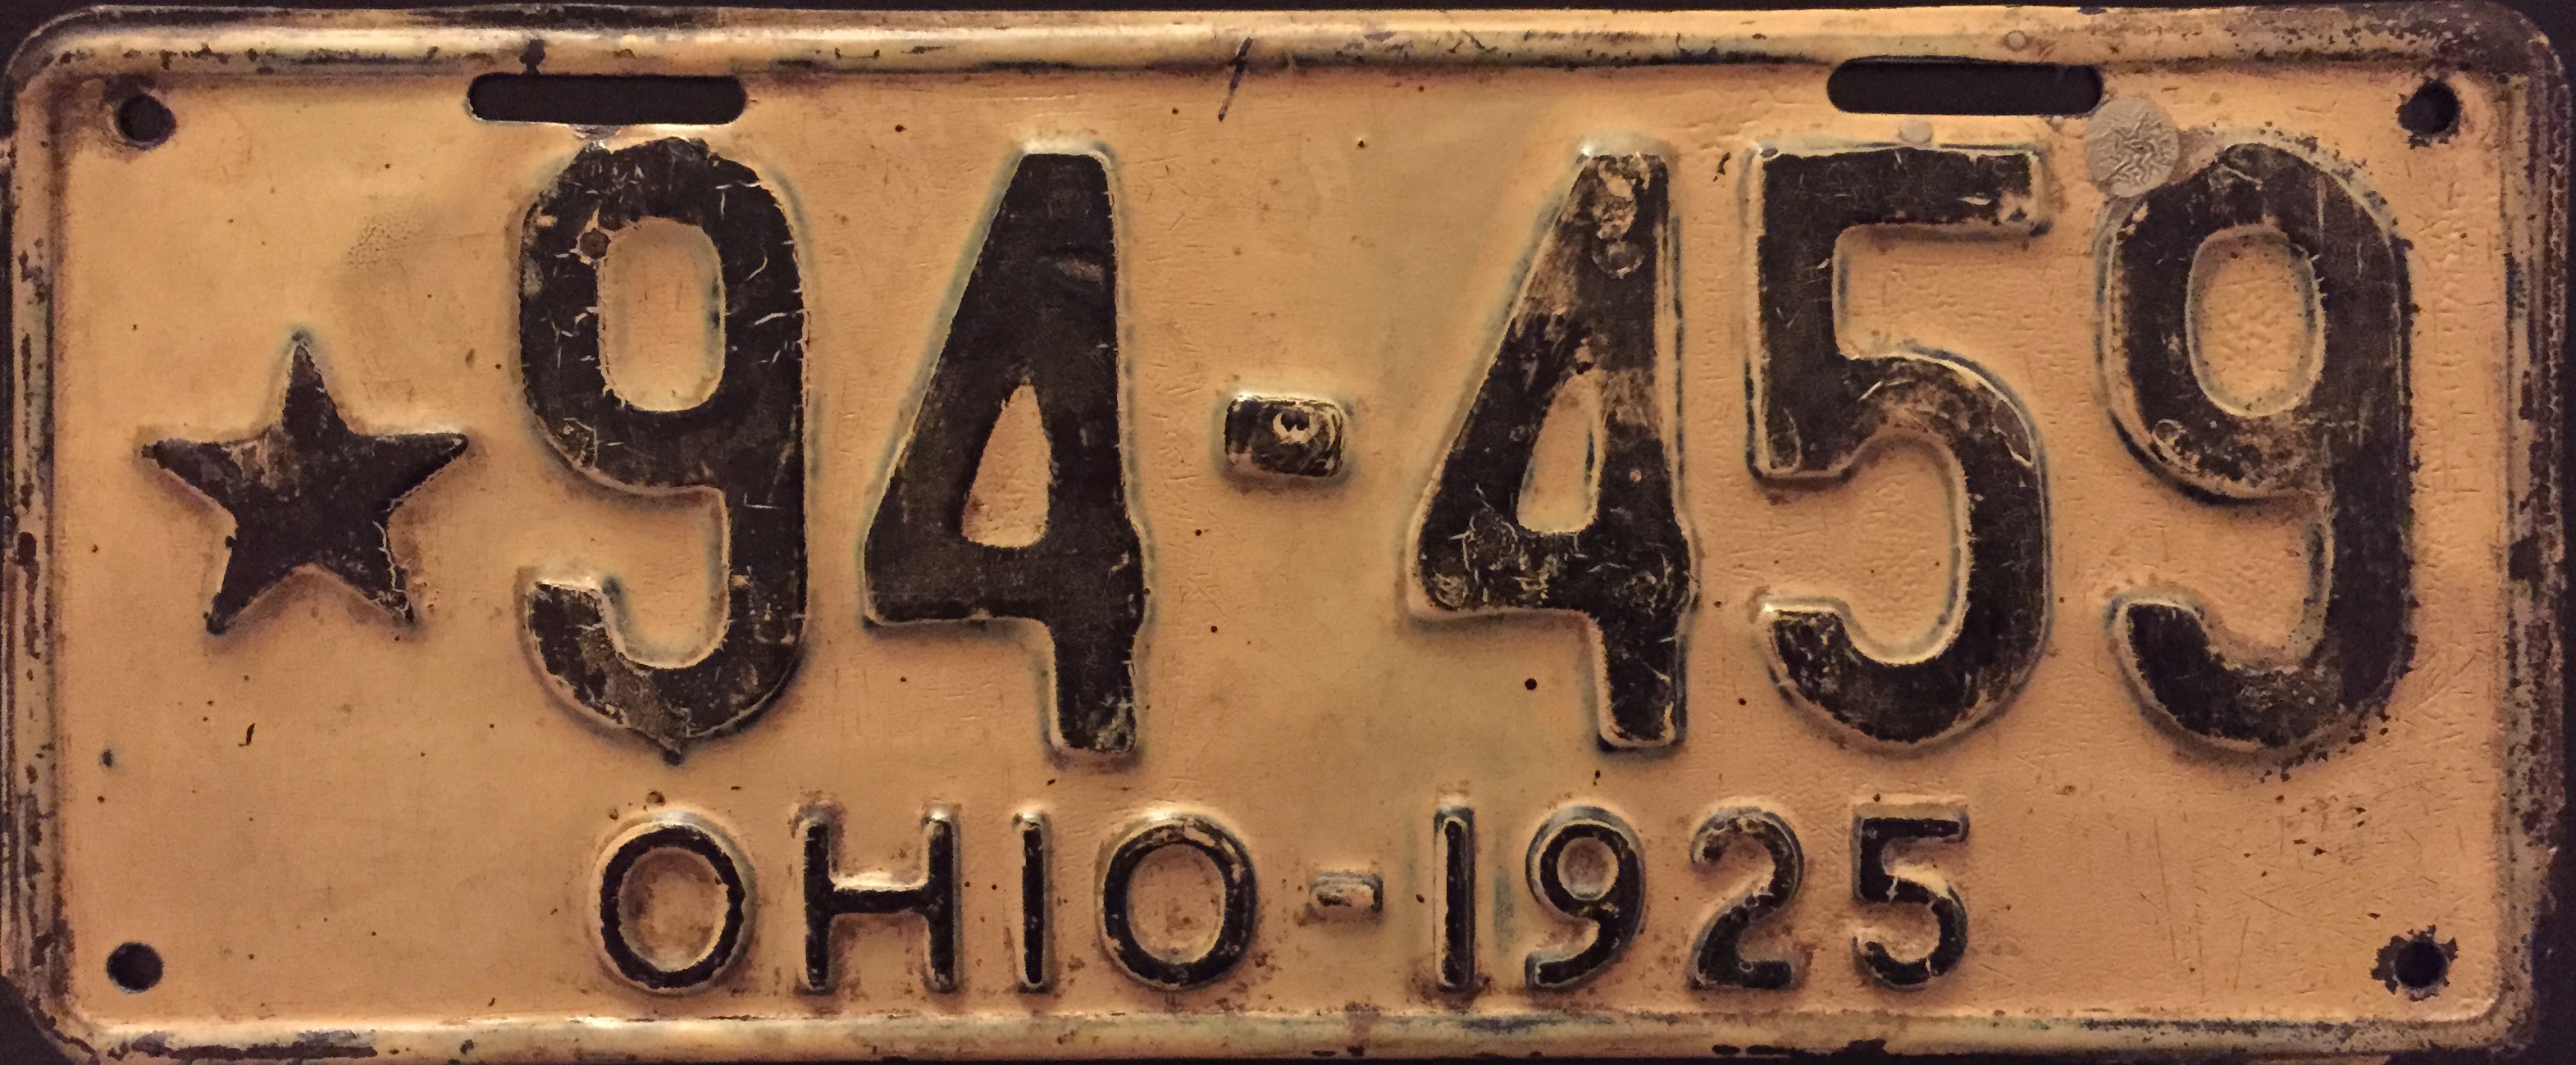 File:1925 Ohio license plate.JPG - Wikimedia Commons